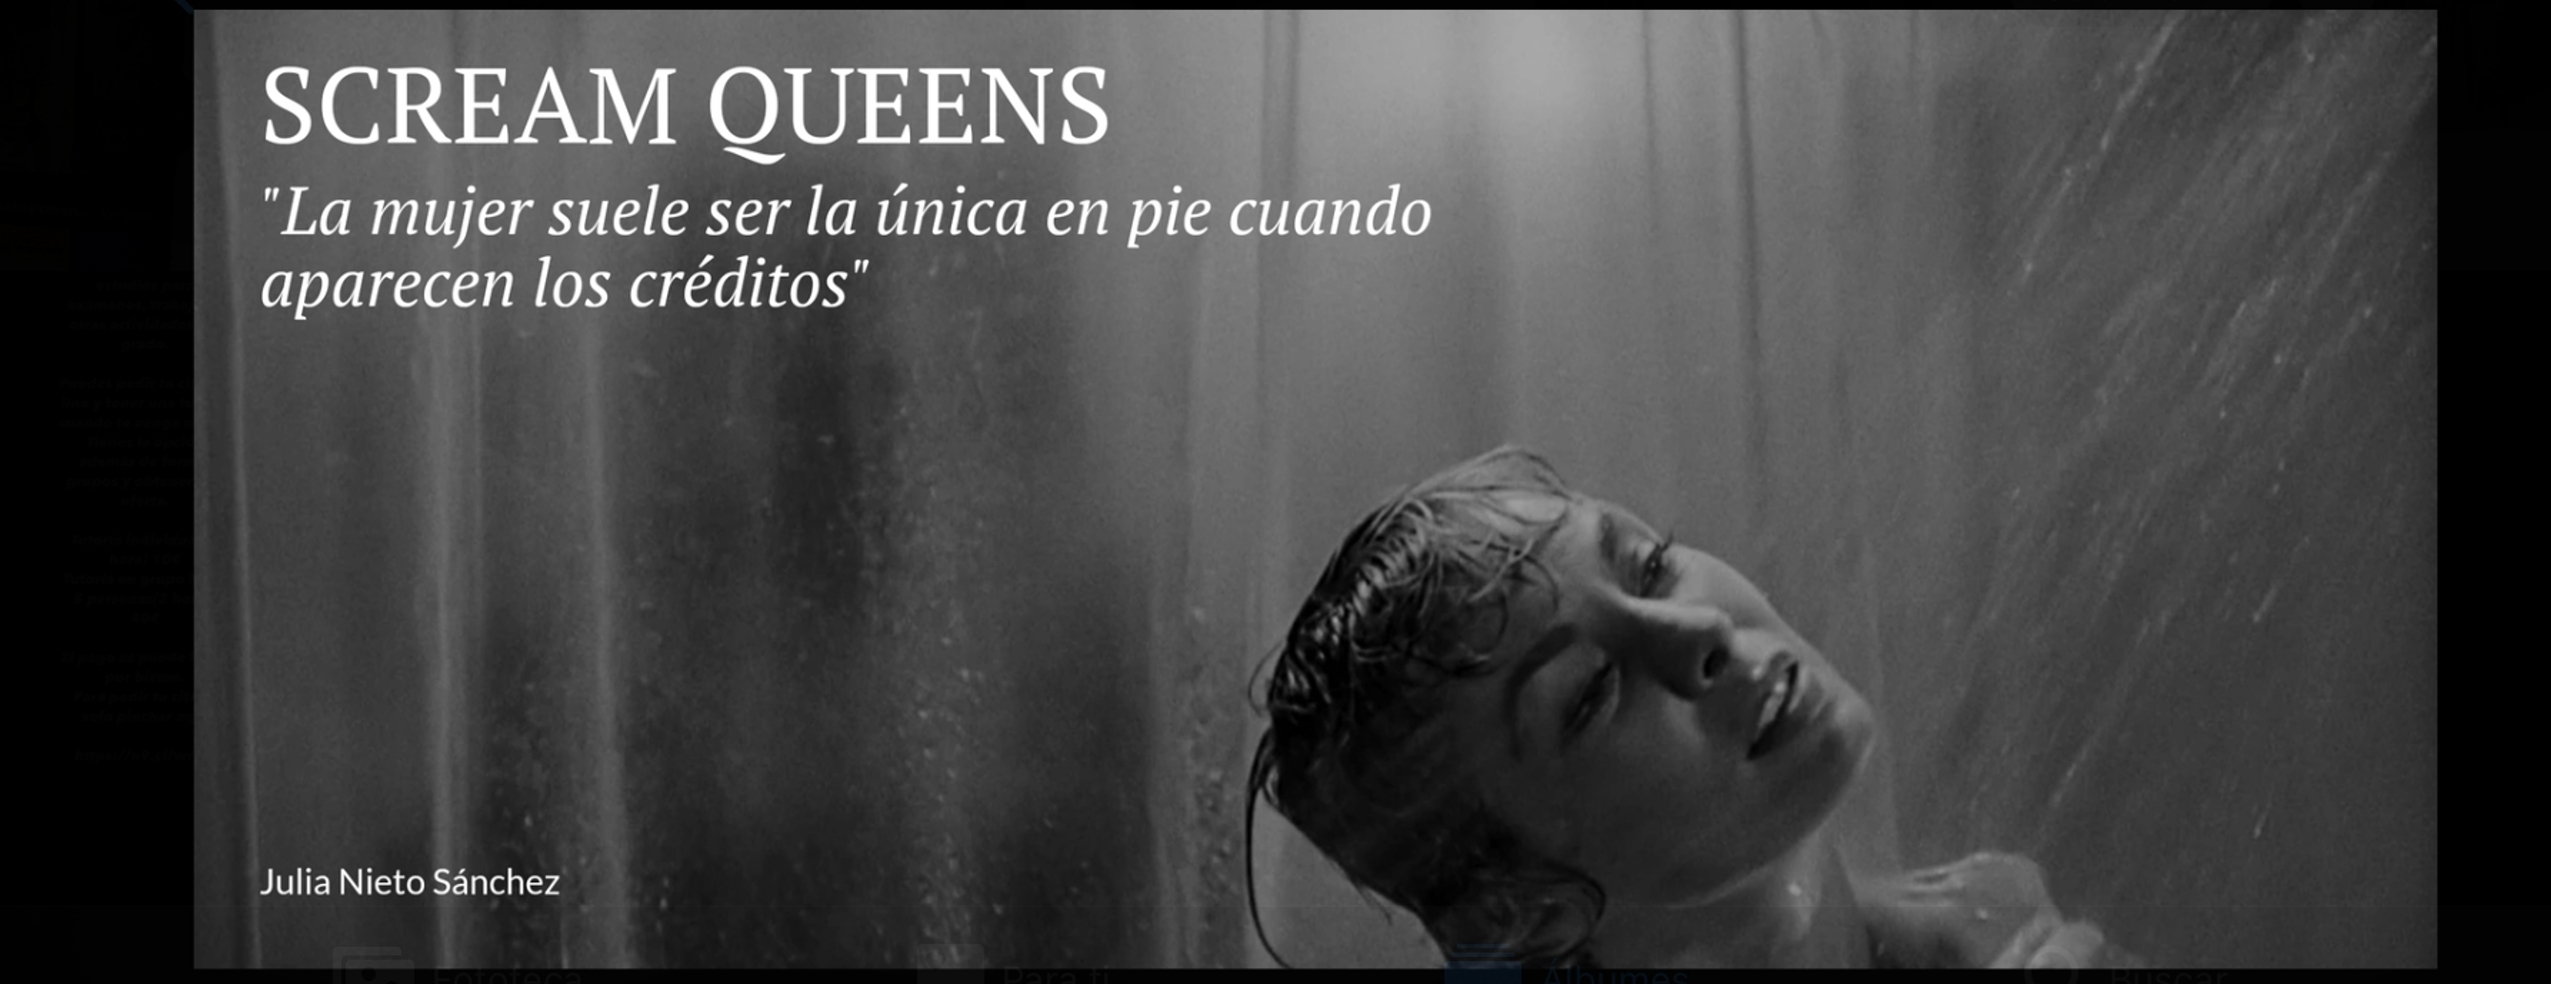 Scream Queens, Julia Nieto